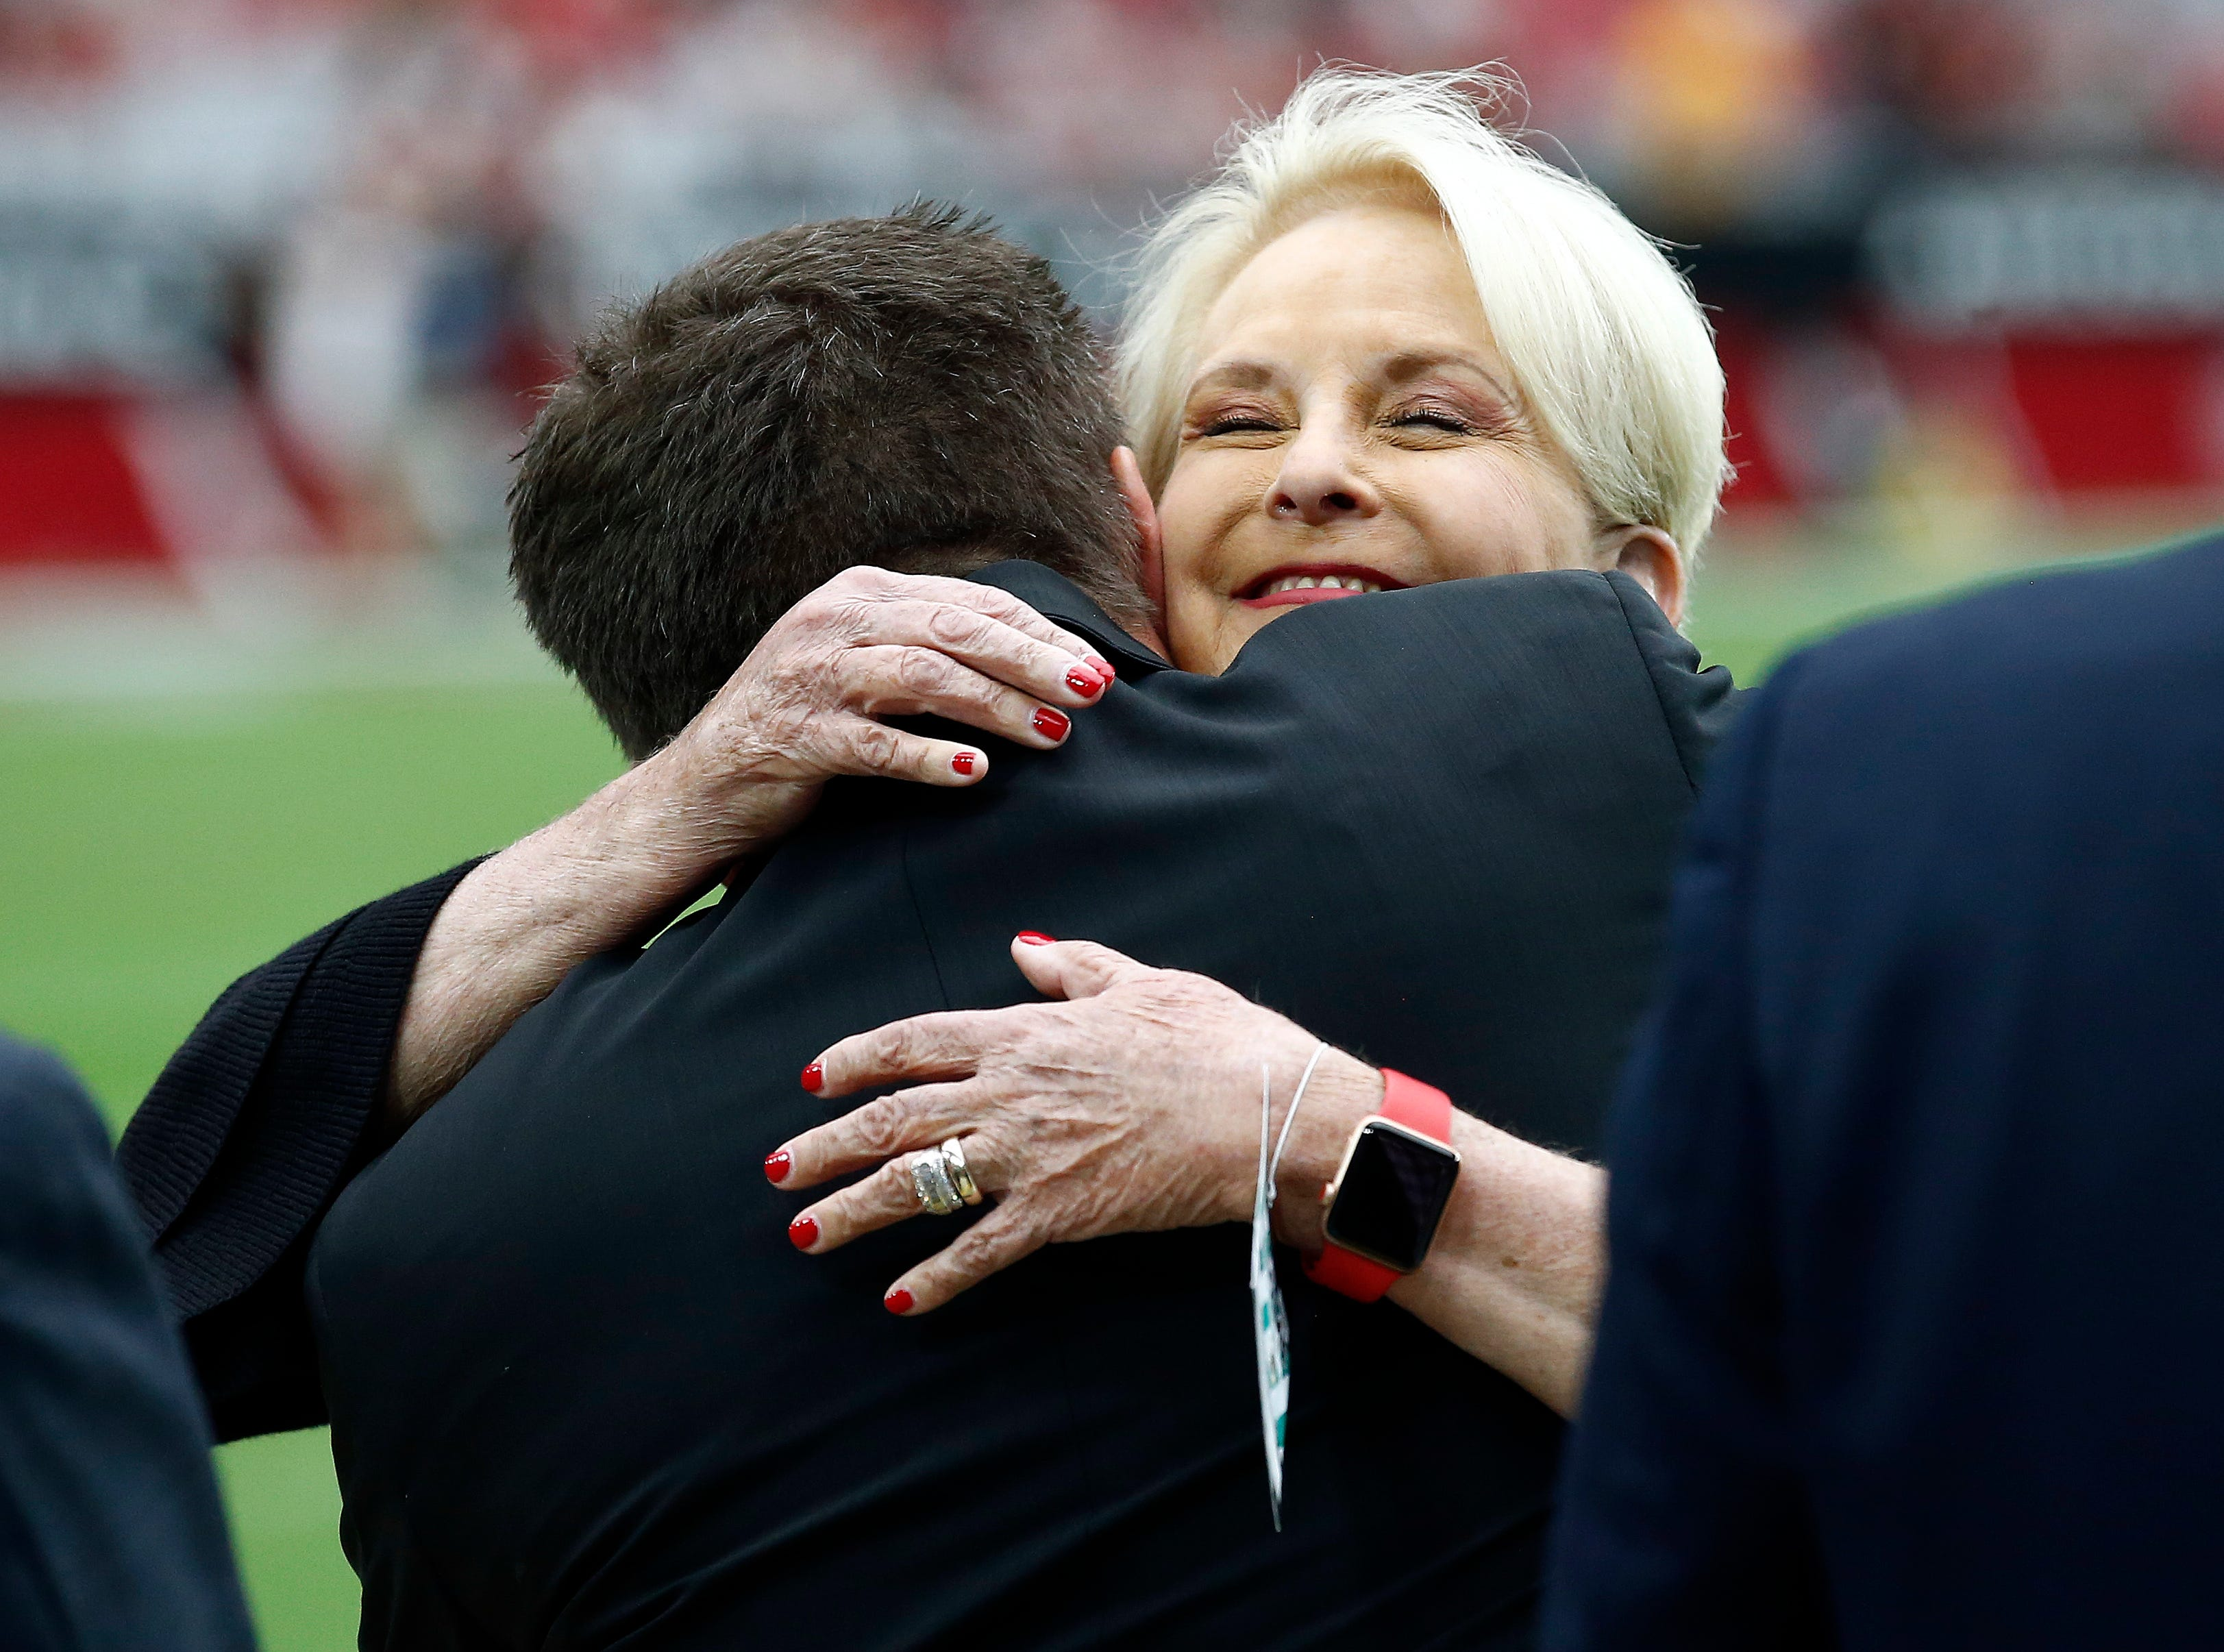 Cindy McCain, wife of the late U.S. Sen. John McCain, embraces Arizona Cardinals president Michael Bidwill prior to an NFL football game between the Washington Redskins and the Arizona Cardinals, Sept. 9, 2018, in Glendale, Ariz.